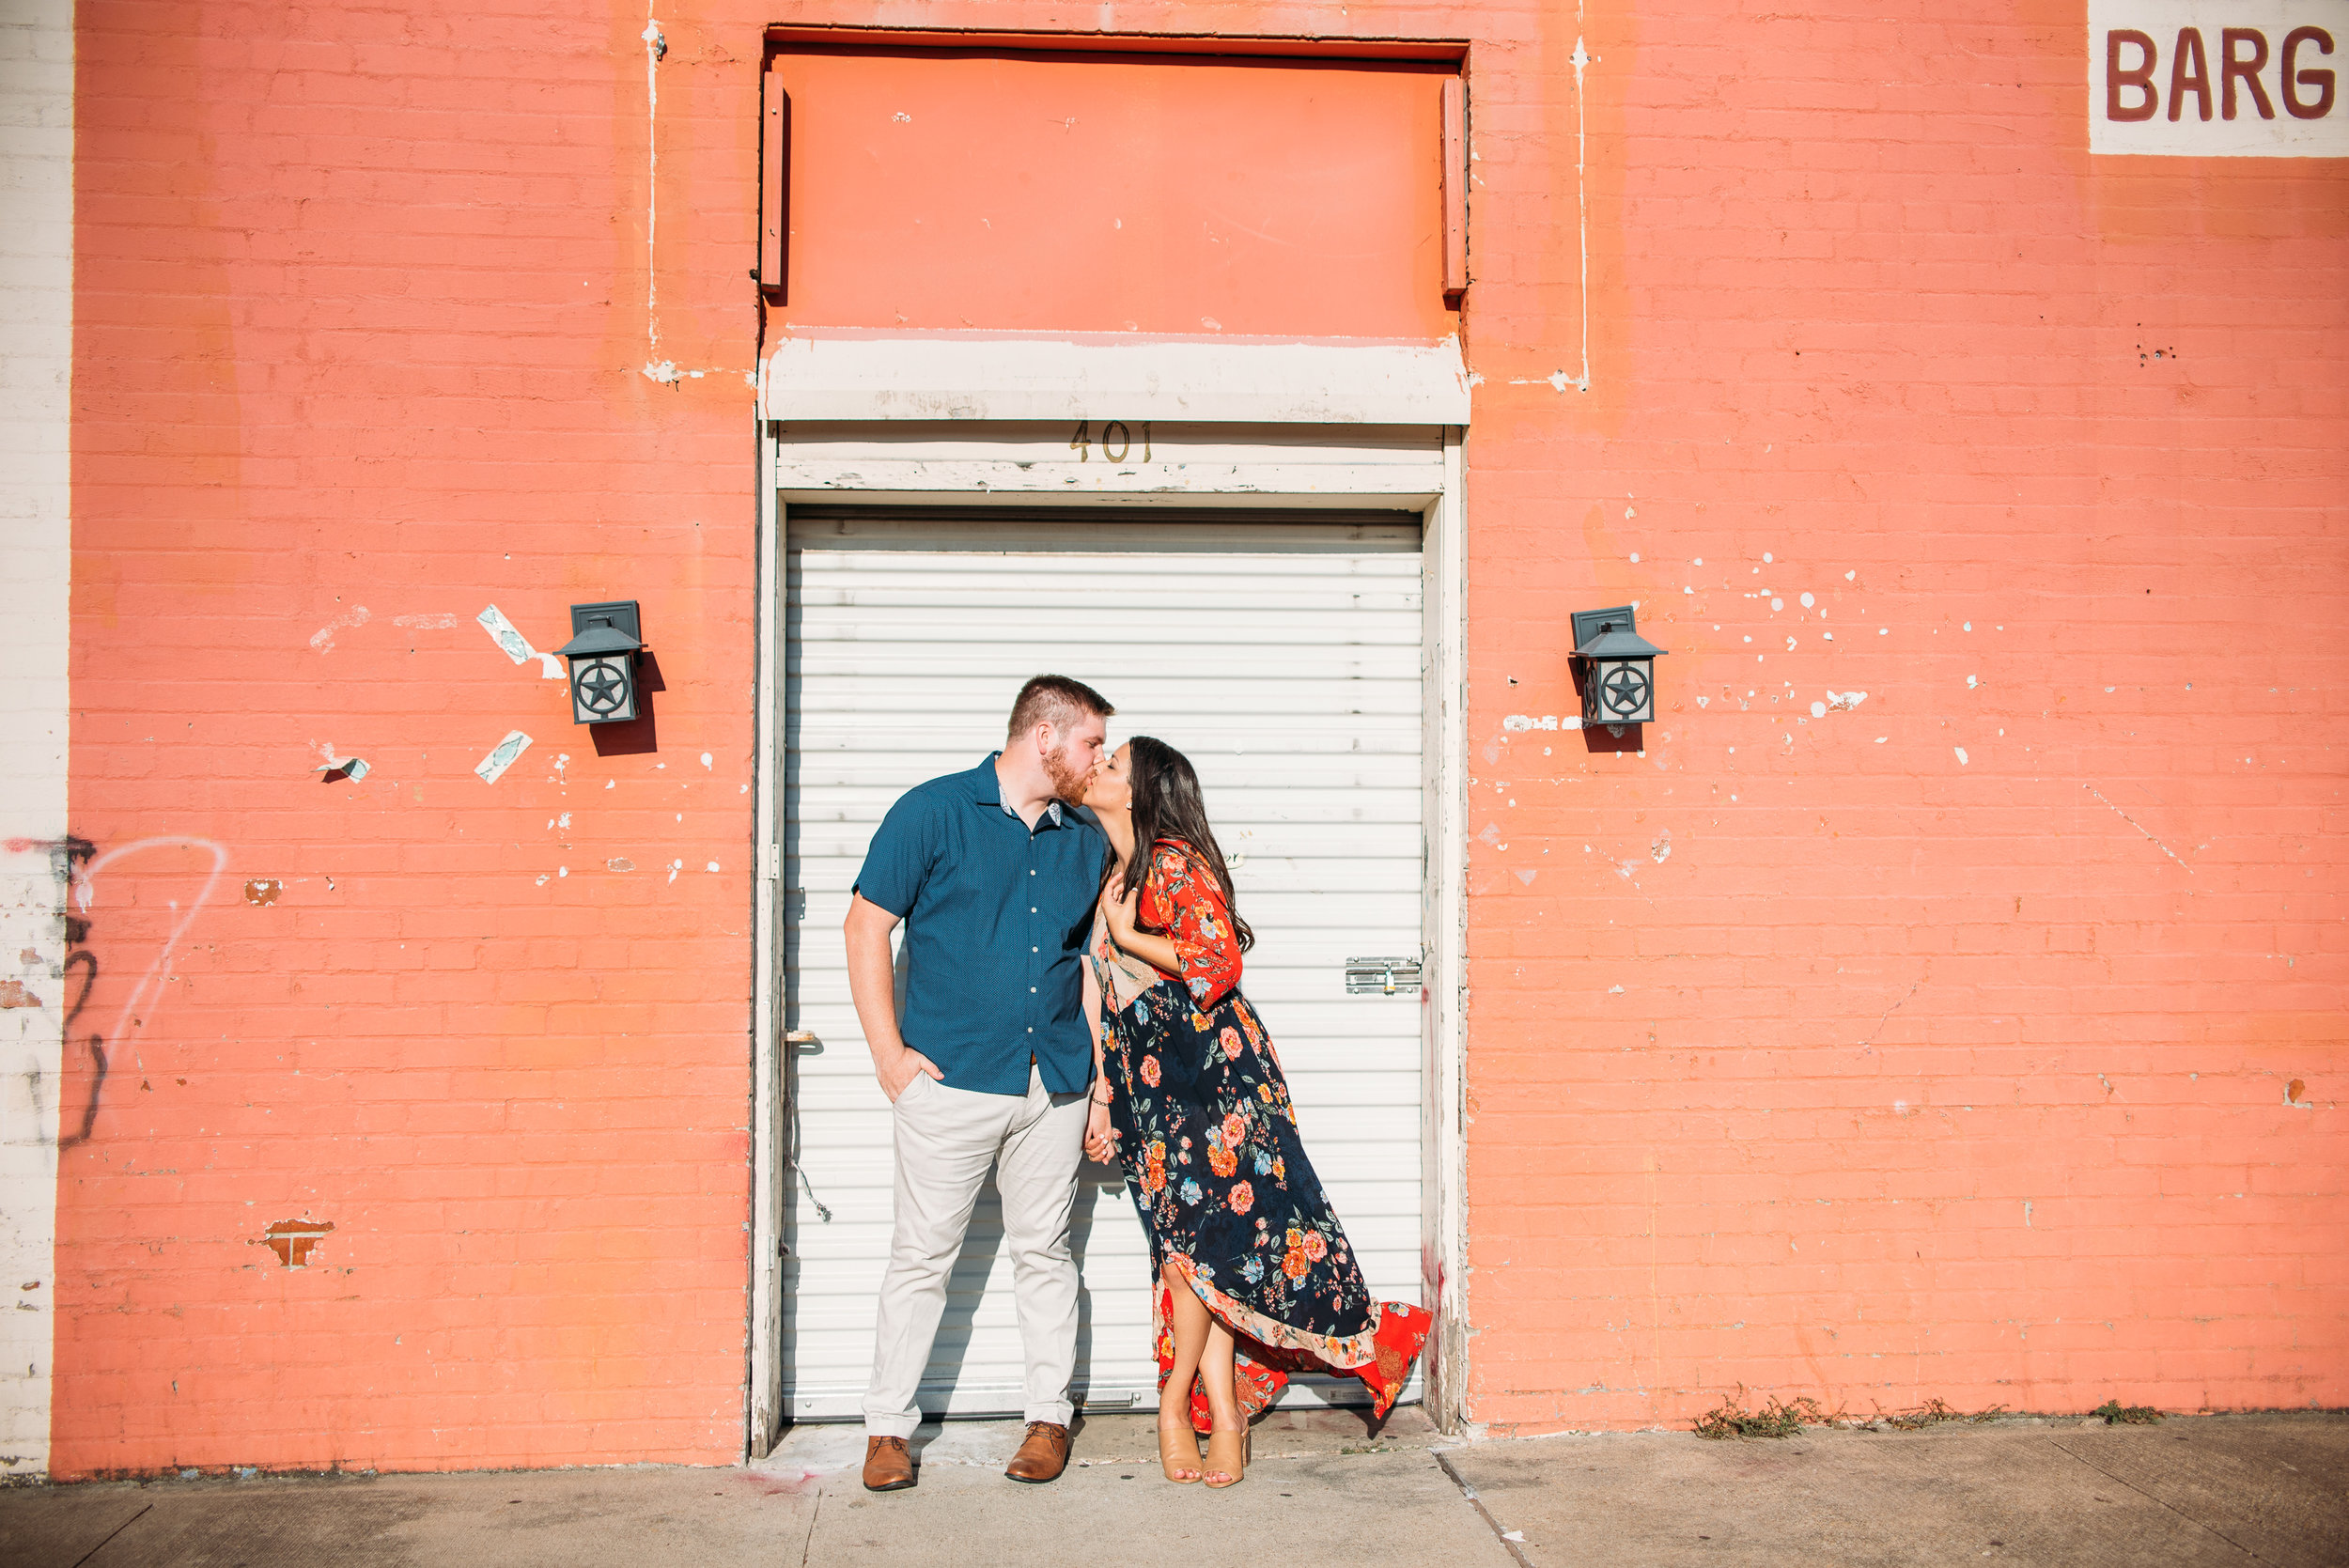 Downtown-Bryan-Engagement-George-Bush-Library-Texas-A&M-University-College-Station-Wedding-Photographer-San-Angel-Photo-Mark-Abigail-Jake-26.jpg